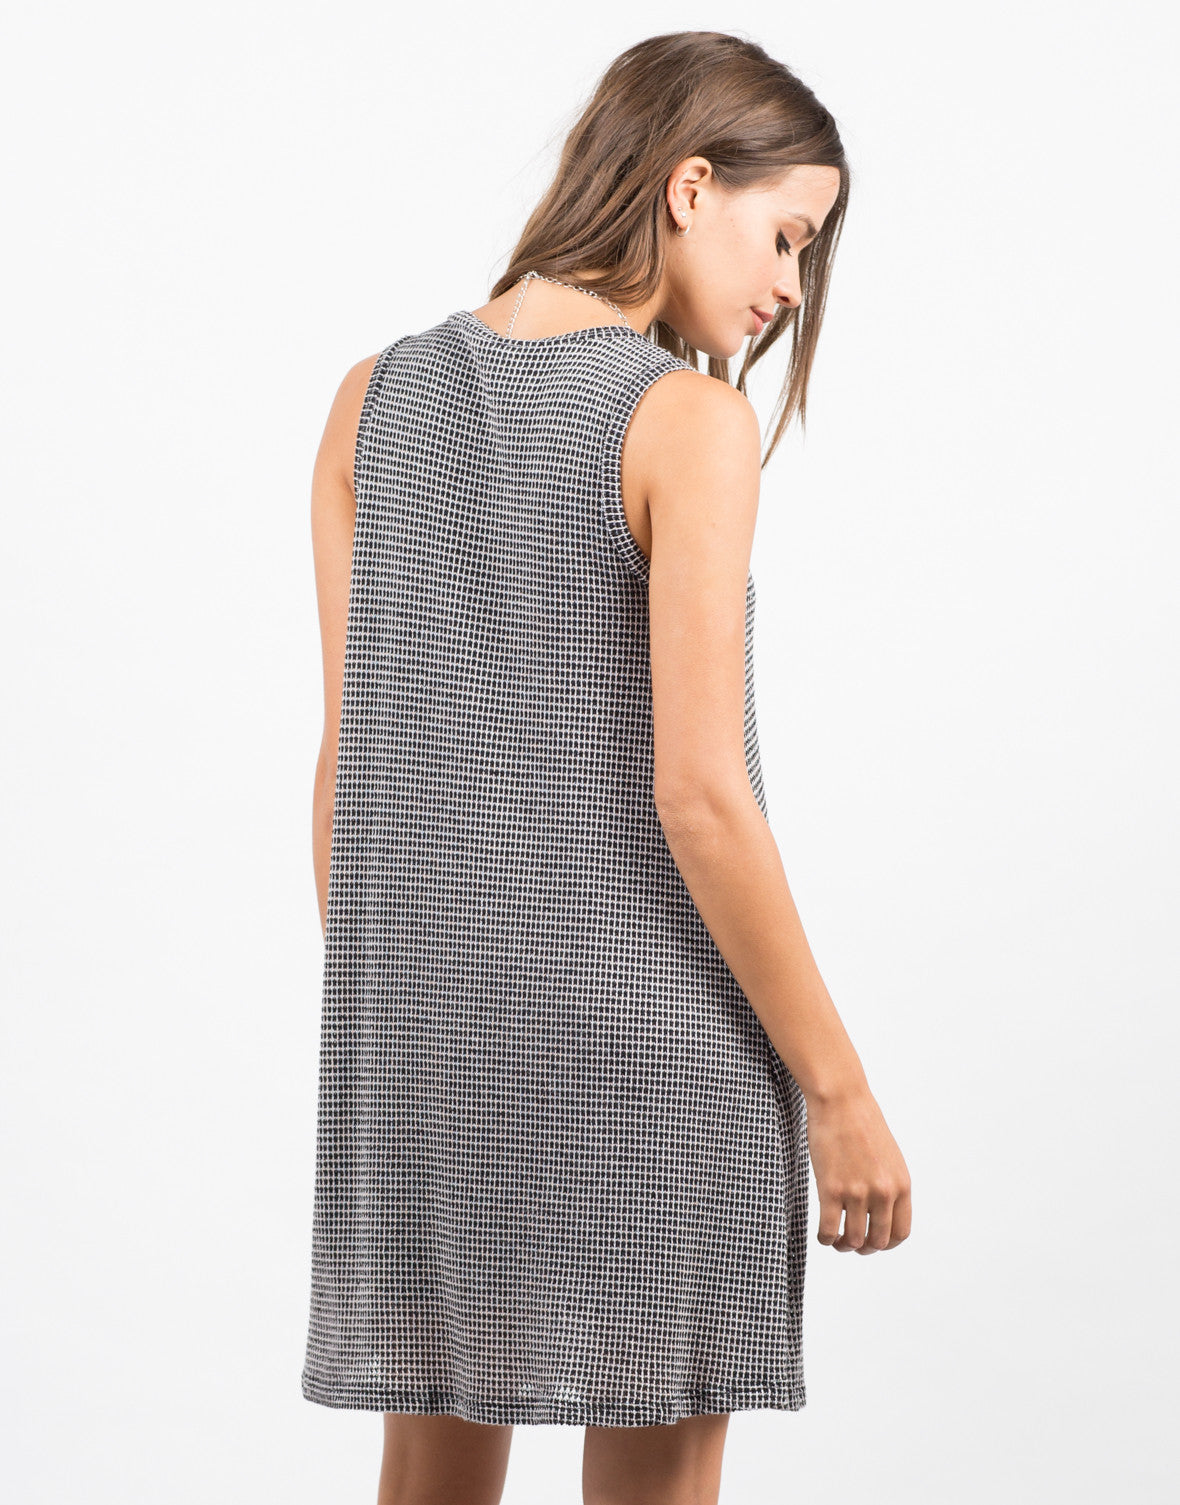 Back View of Checkered Swing Dress